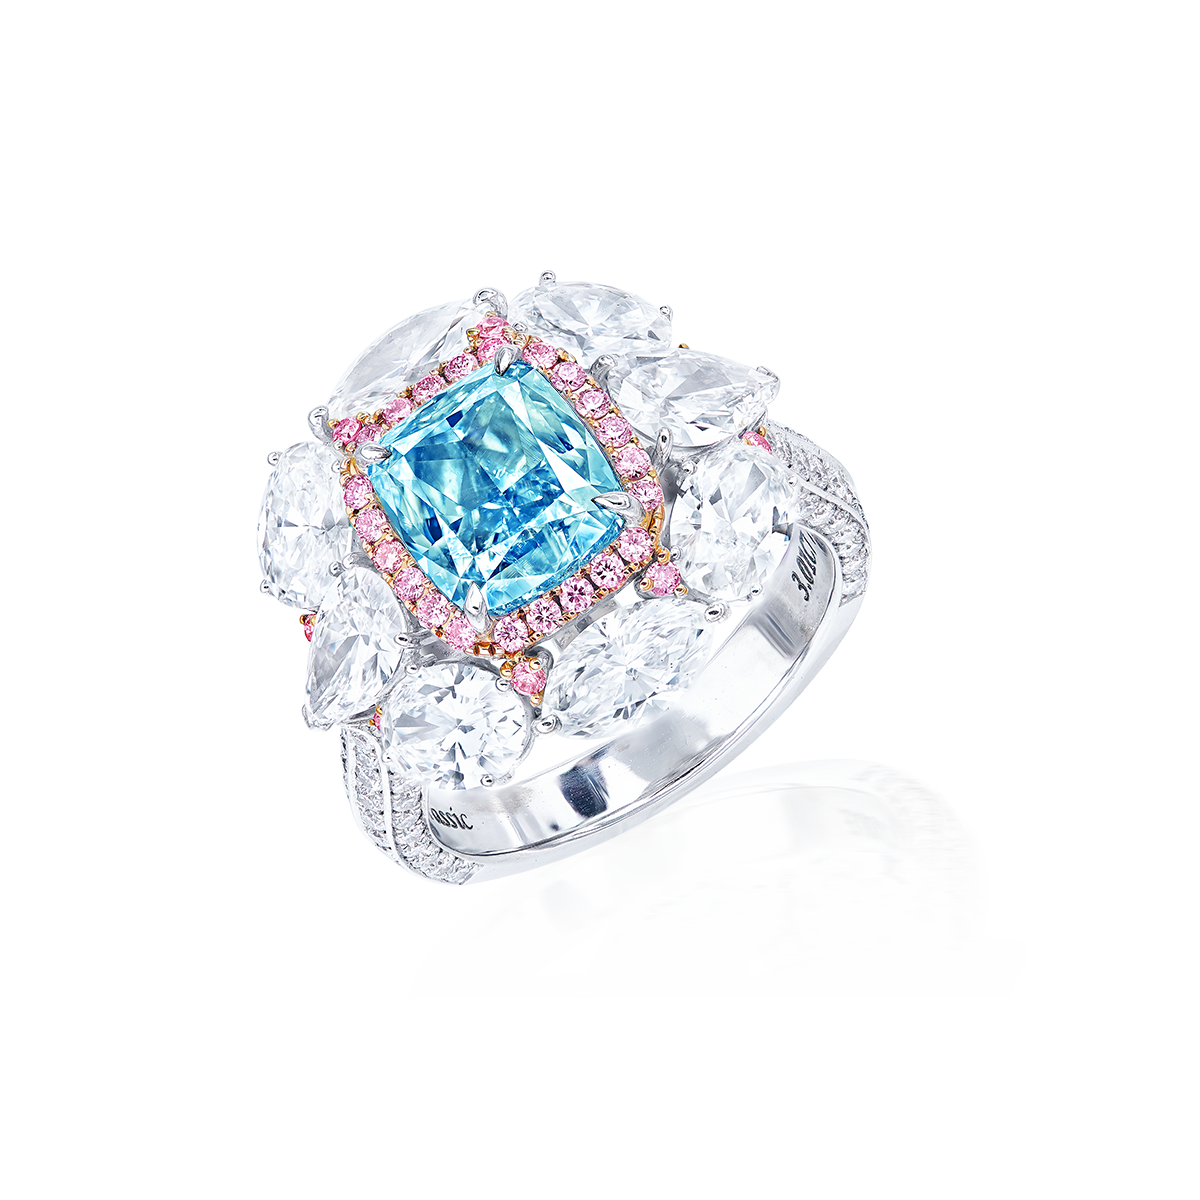 GIA 3.01克拉 綠藍鑽鑽戒